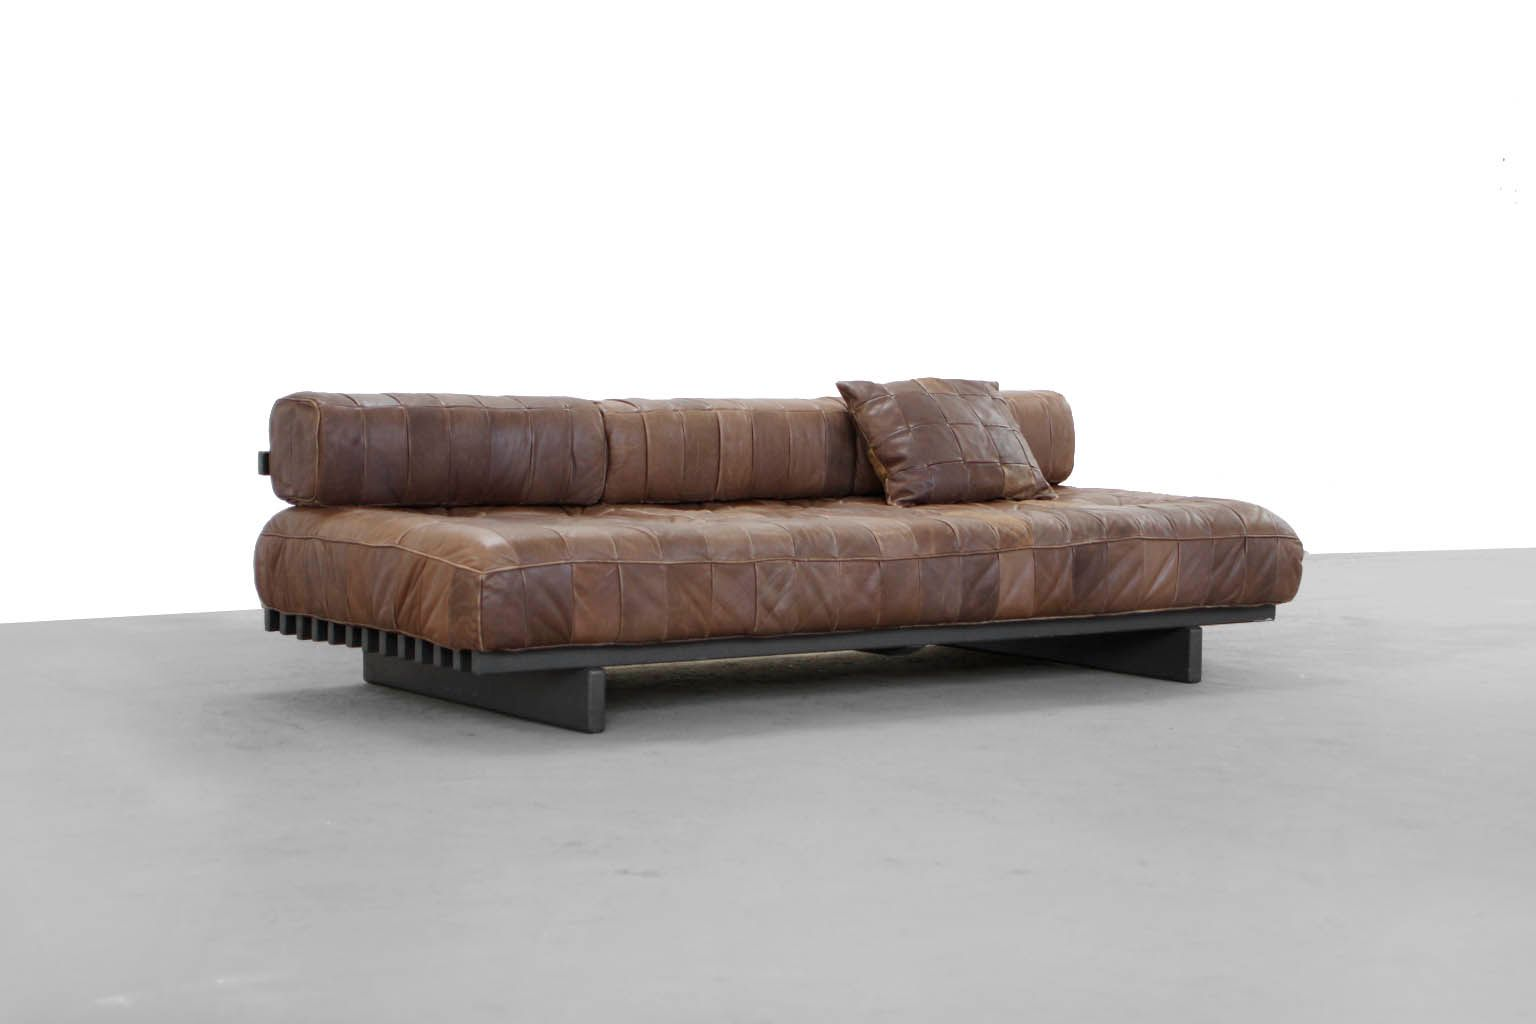 mid century sofa daybed by de sede 1972 for sale at pamono. Black Bedroom Furniture Sets. Home Design Ideas